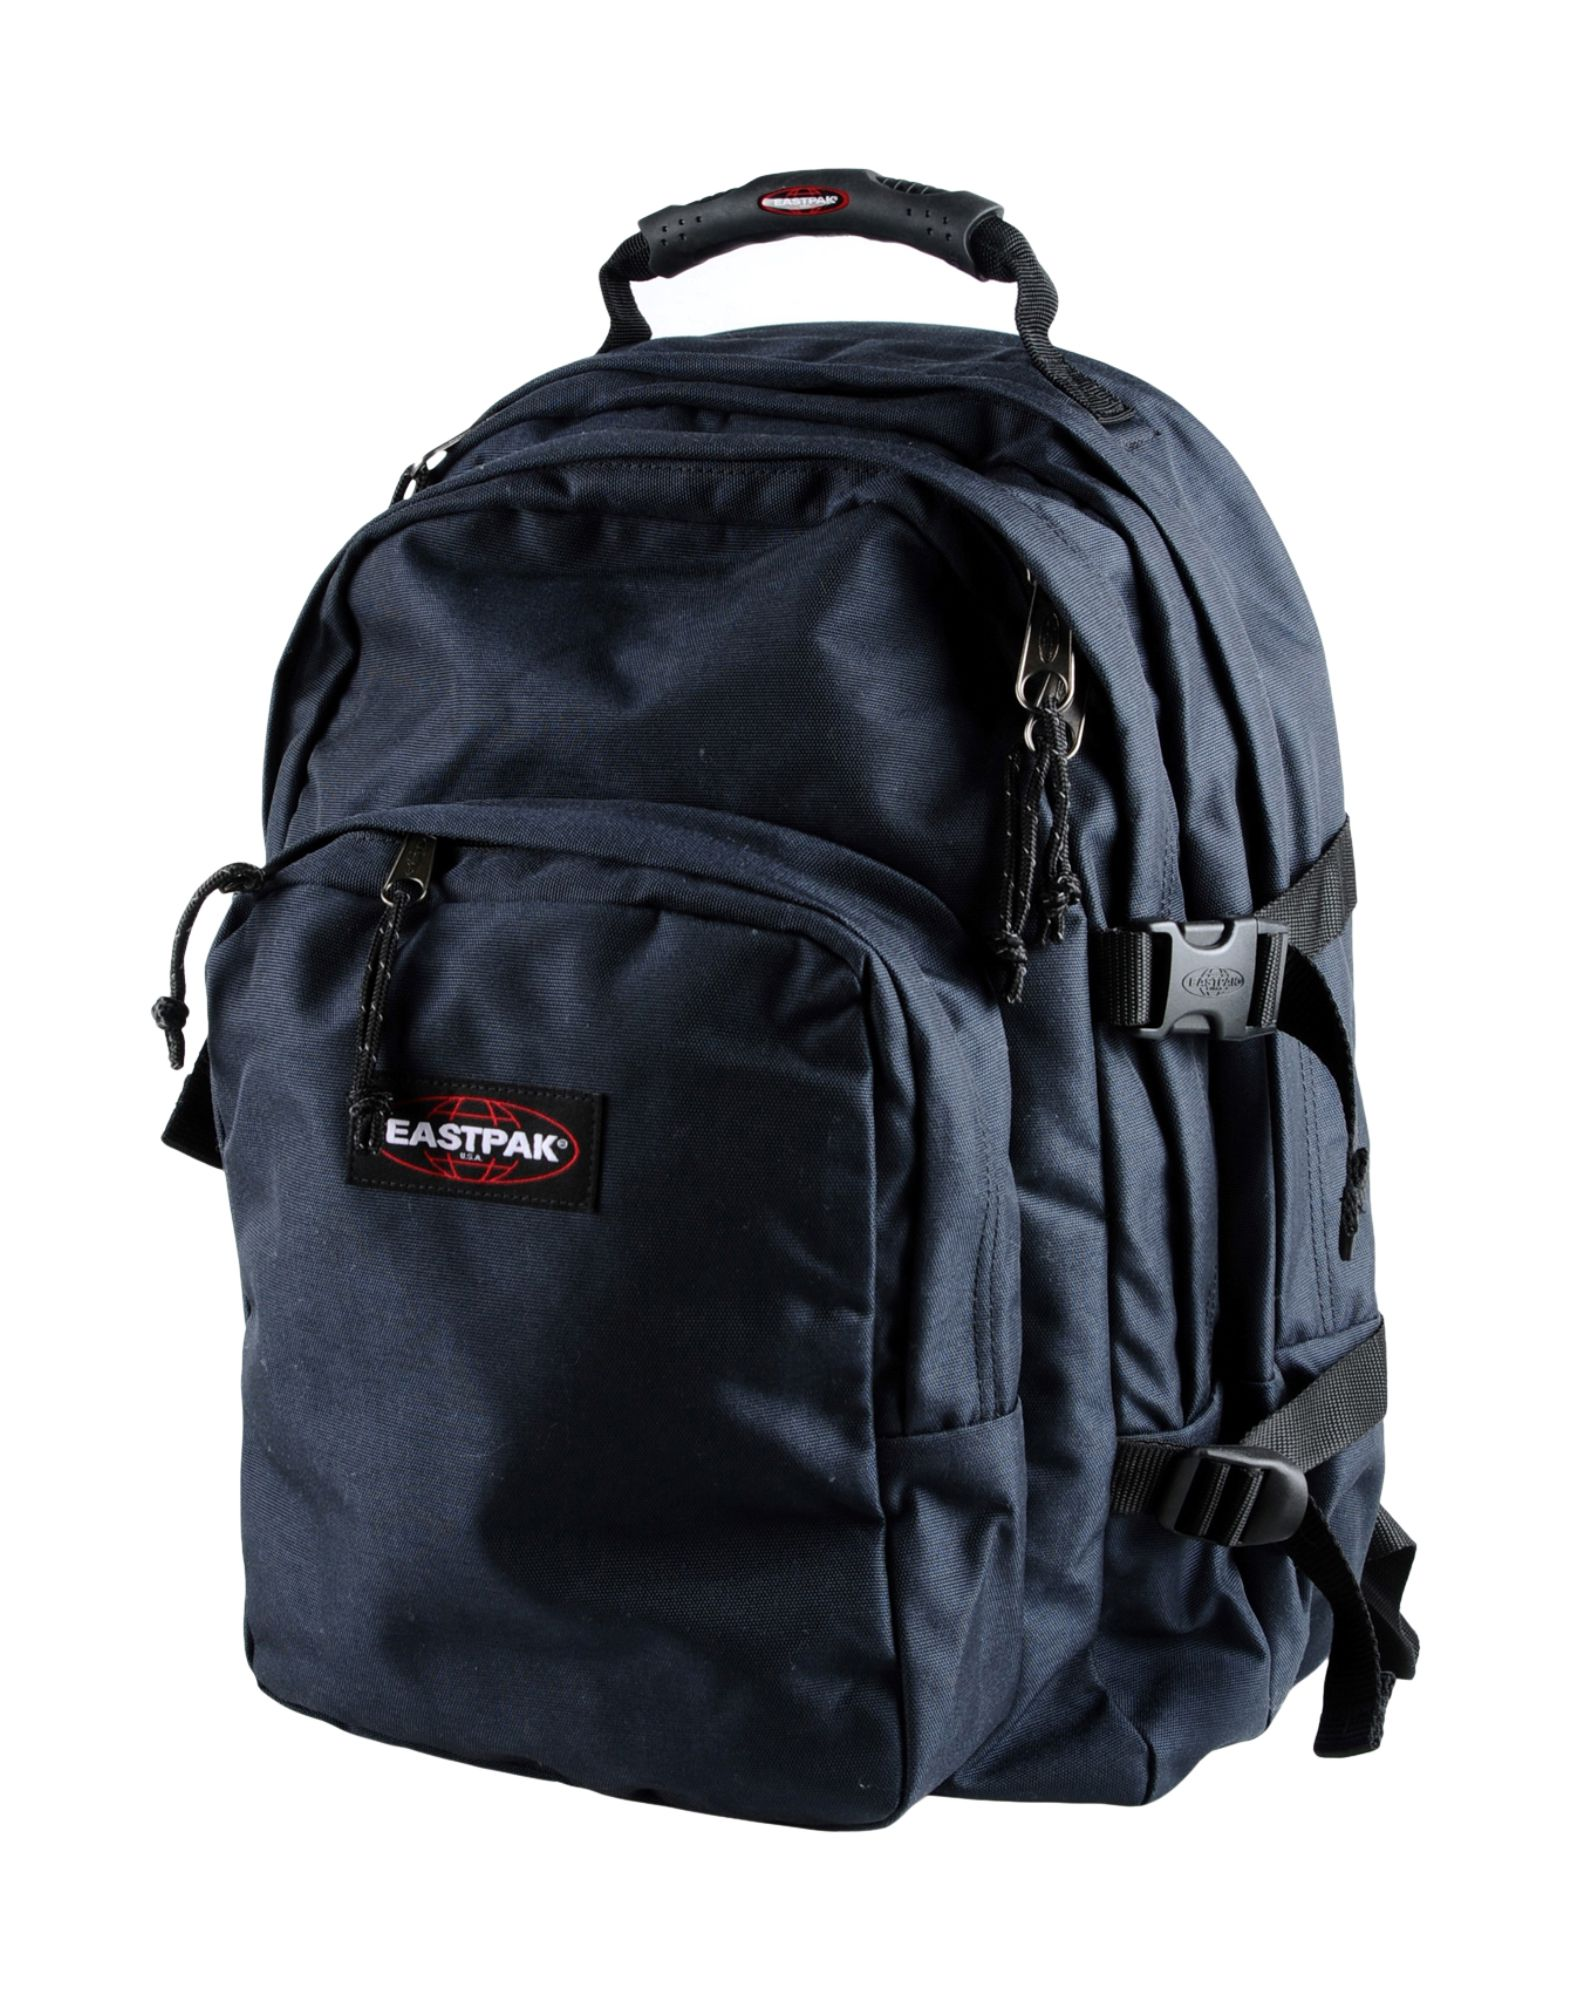 backpacks book bags school bags more shop at ebates